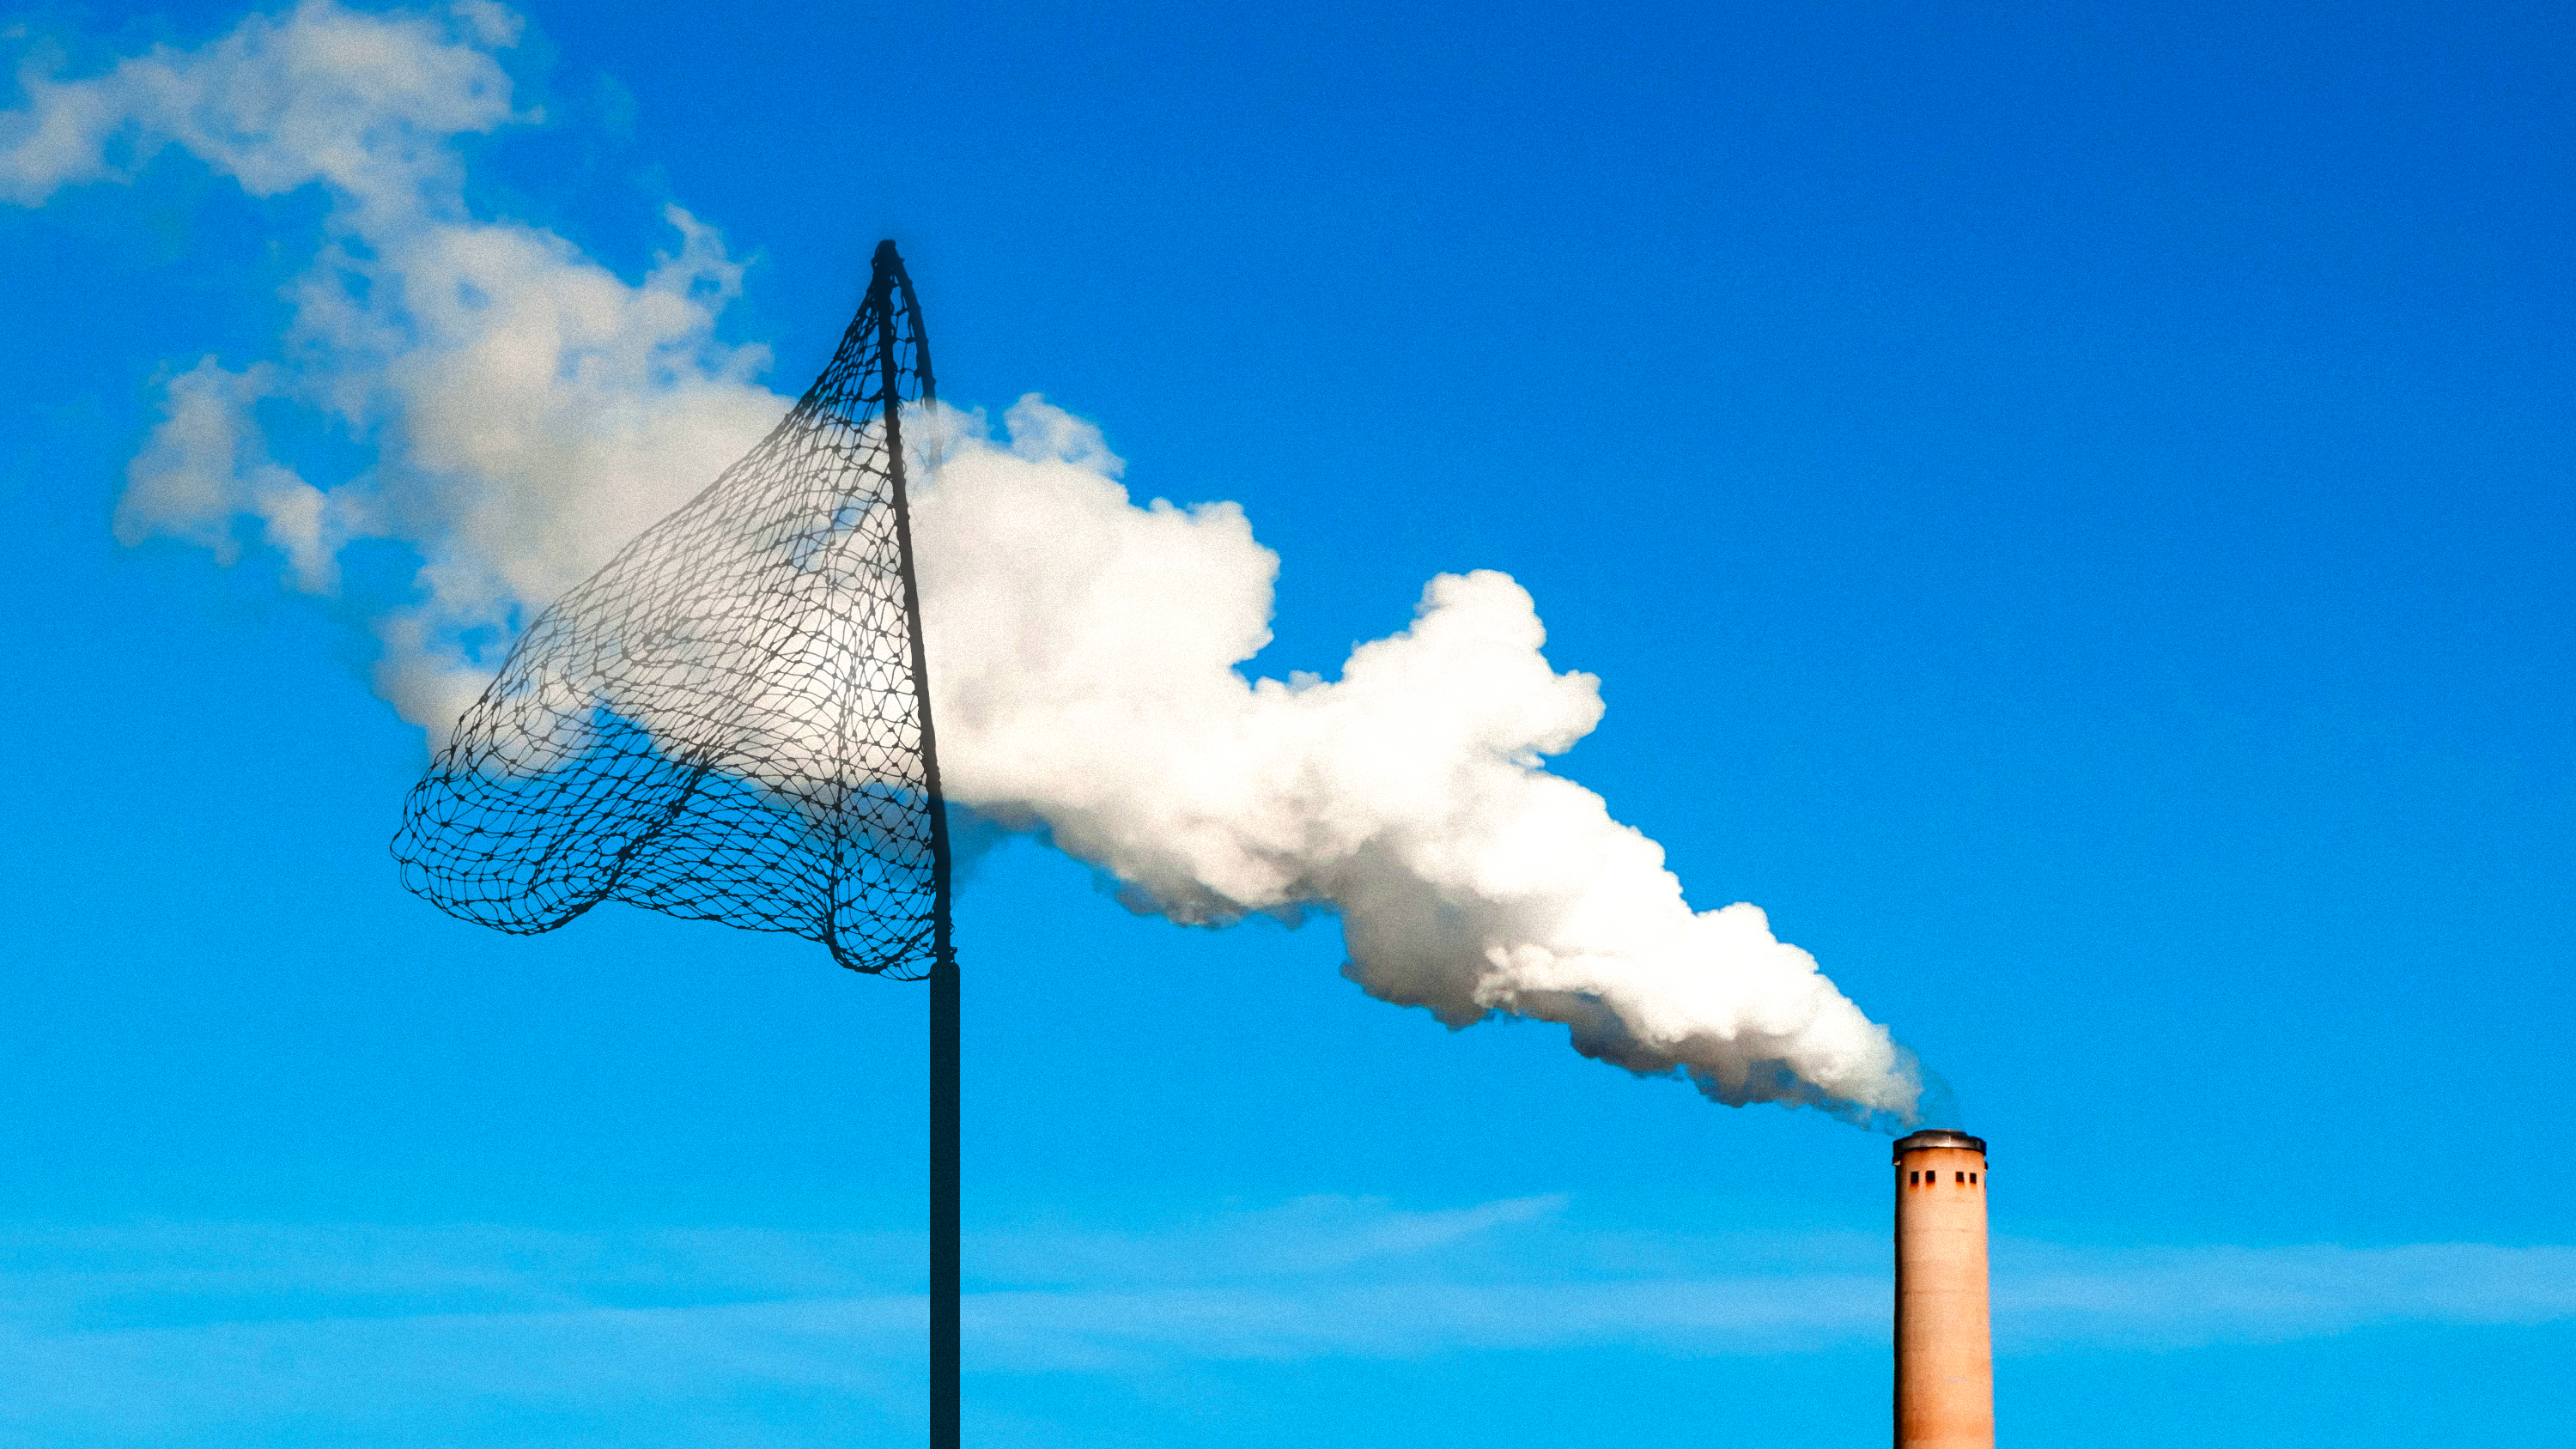 conceptual image showing a smoke stack blowing smoke into a large butterfly net